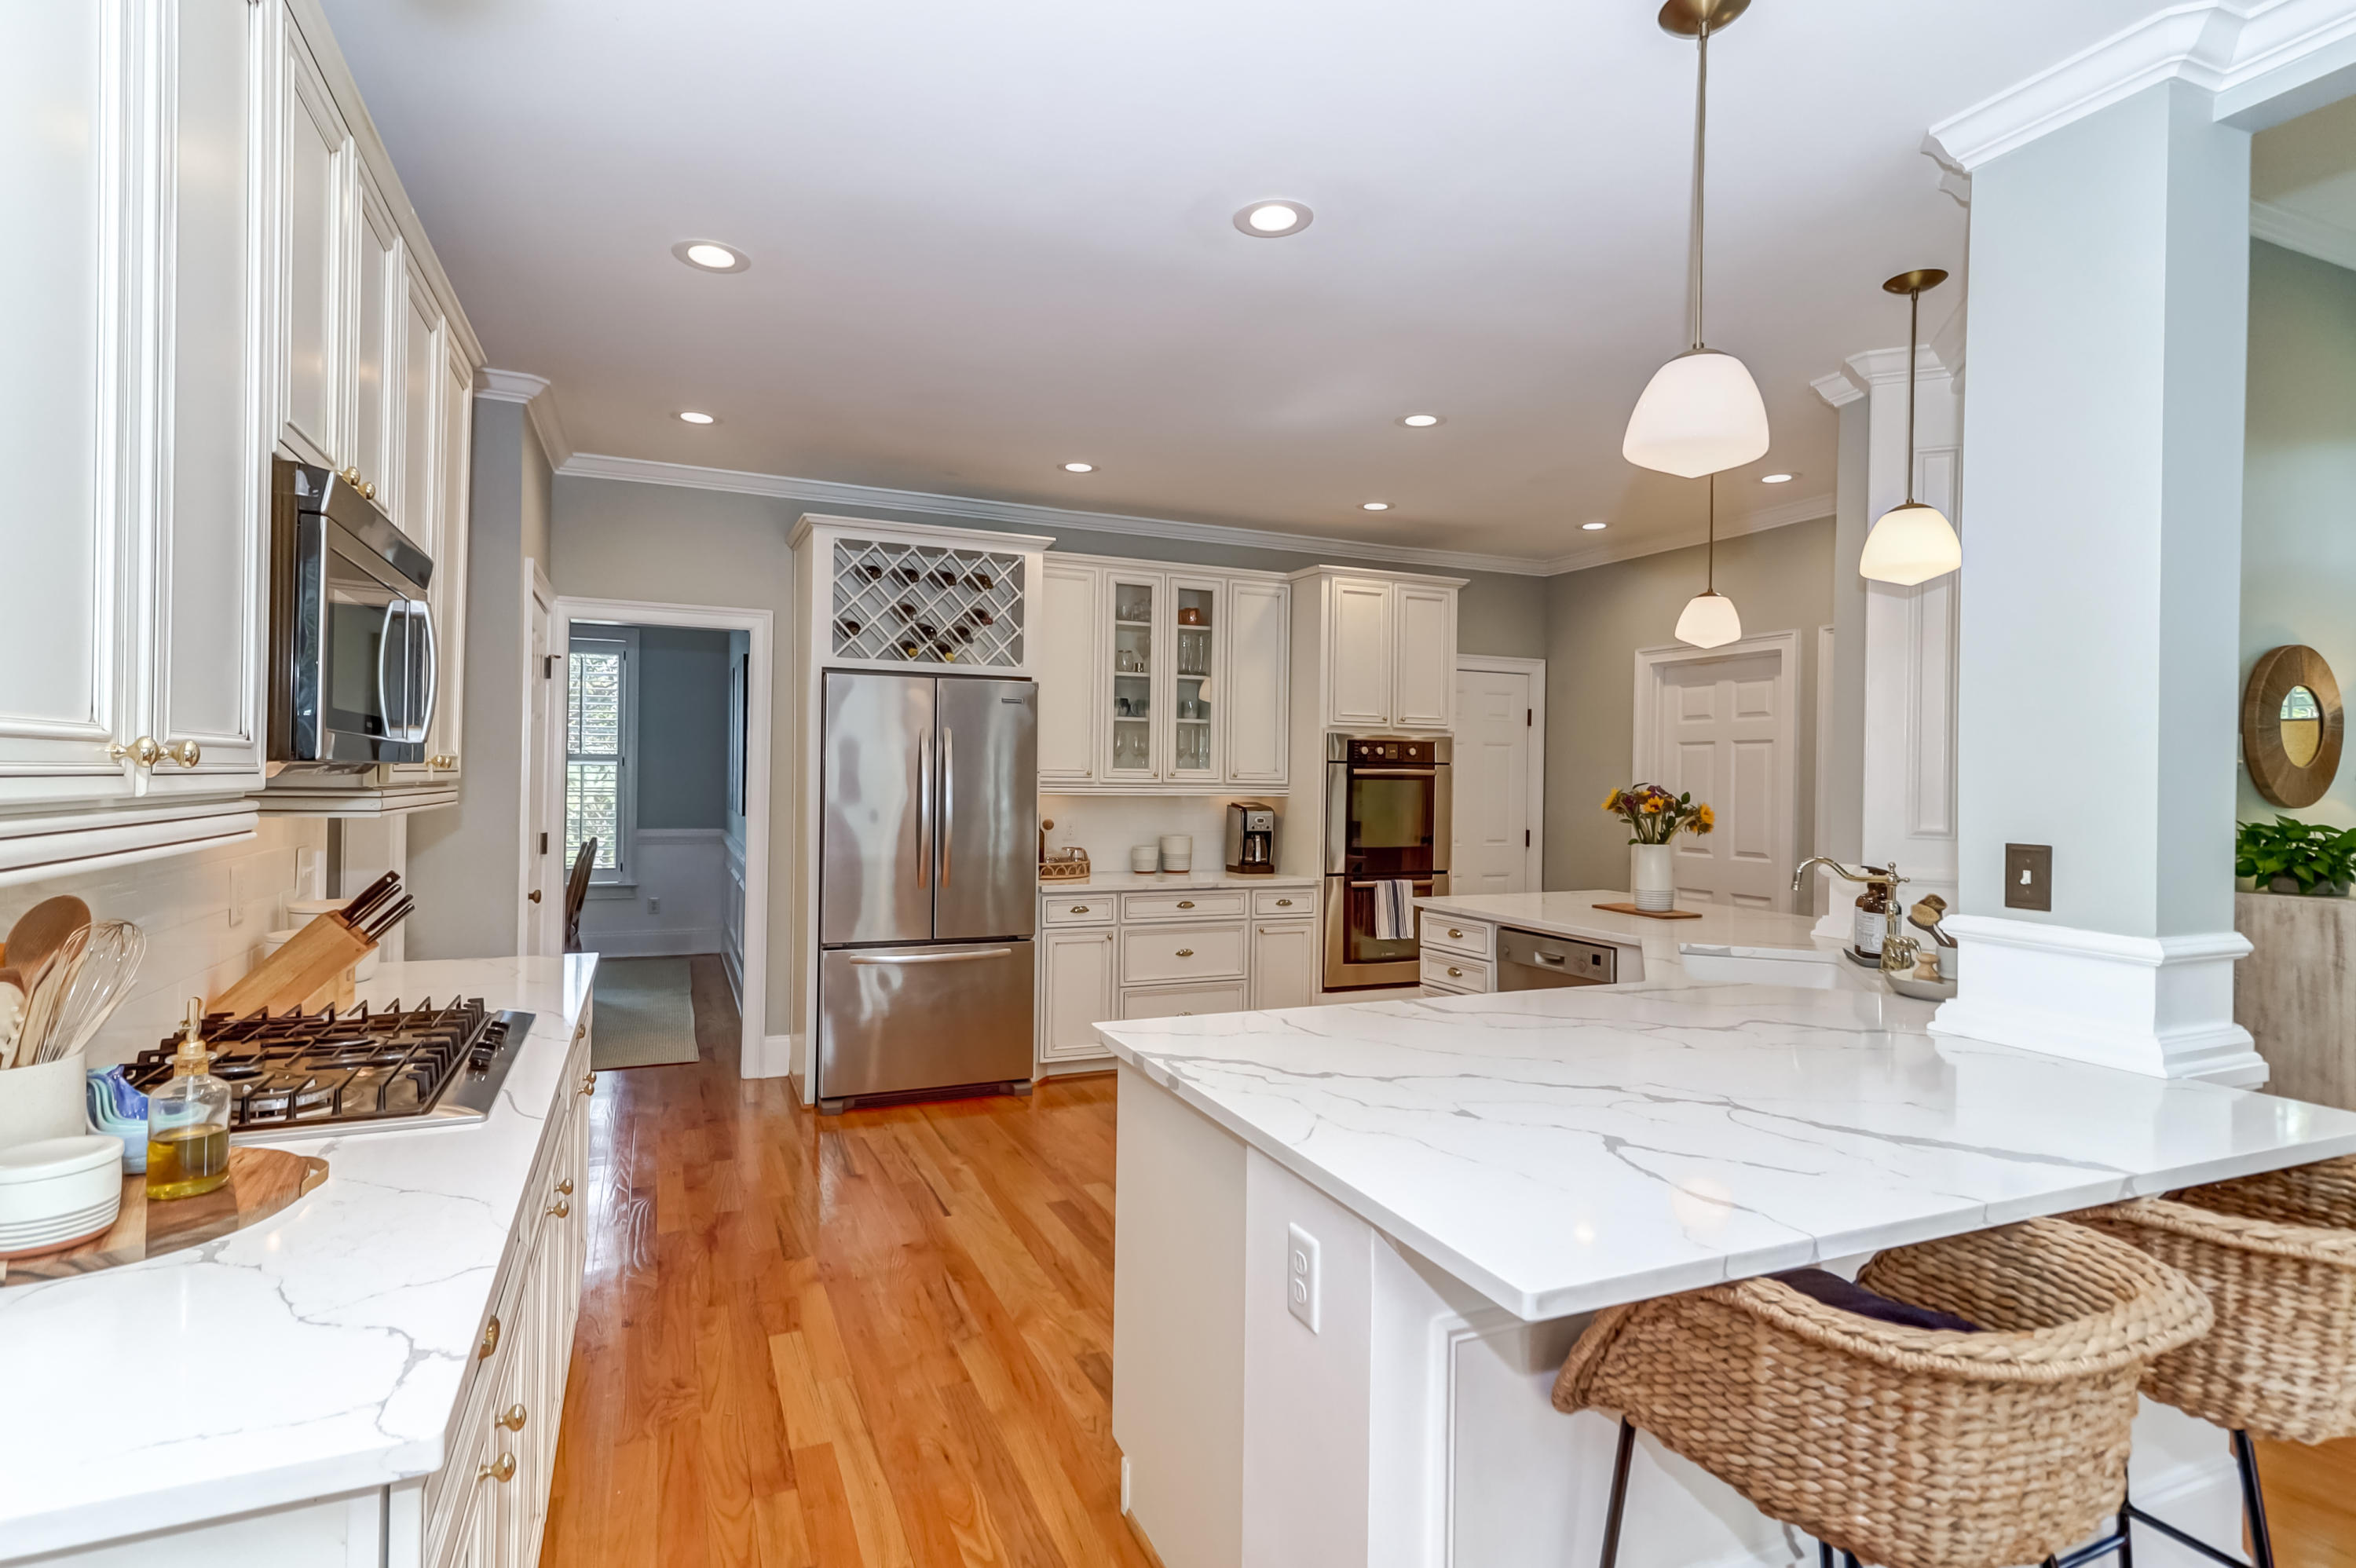 Woodward Pointe Homes For Sale - 657 White Chapel, Charleston, SC - 36